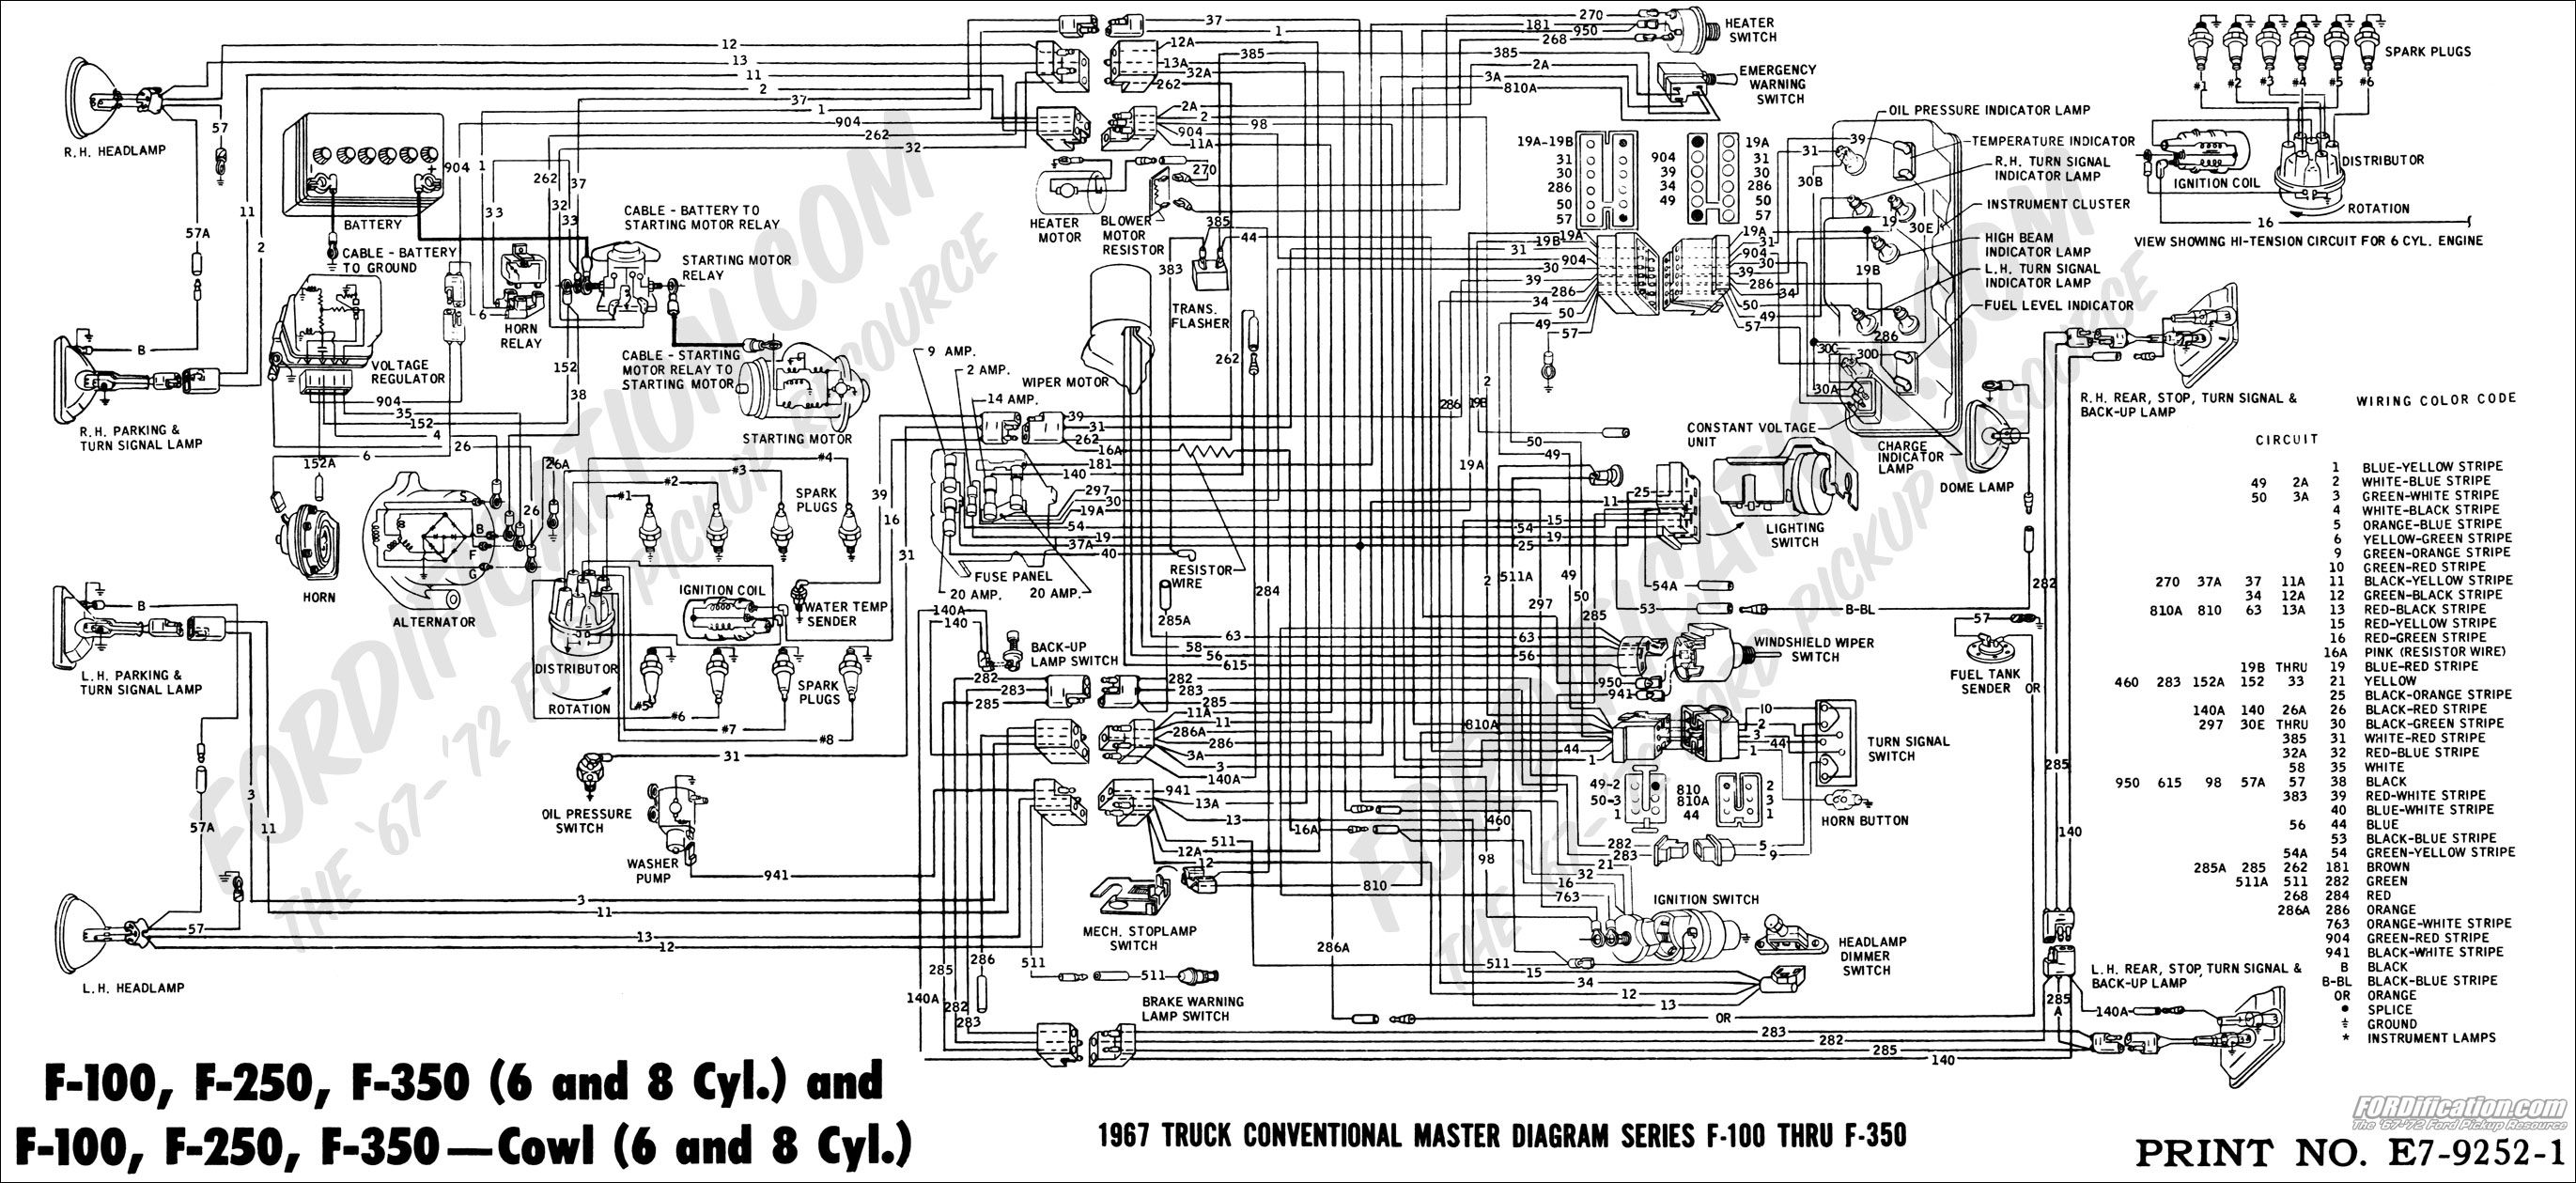 8e608320d8e6c71ff5bbdb2efdd7ada1 ford truck technical drawings and schematics section h wiring Ford E 350 Wiring Diagrams at gsmx.co